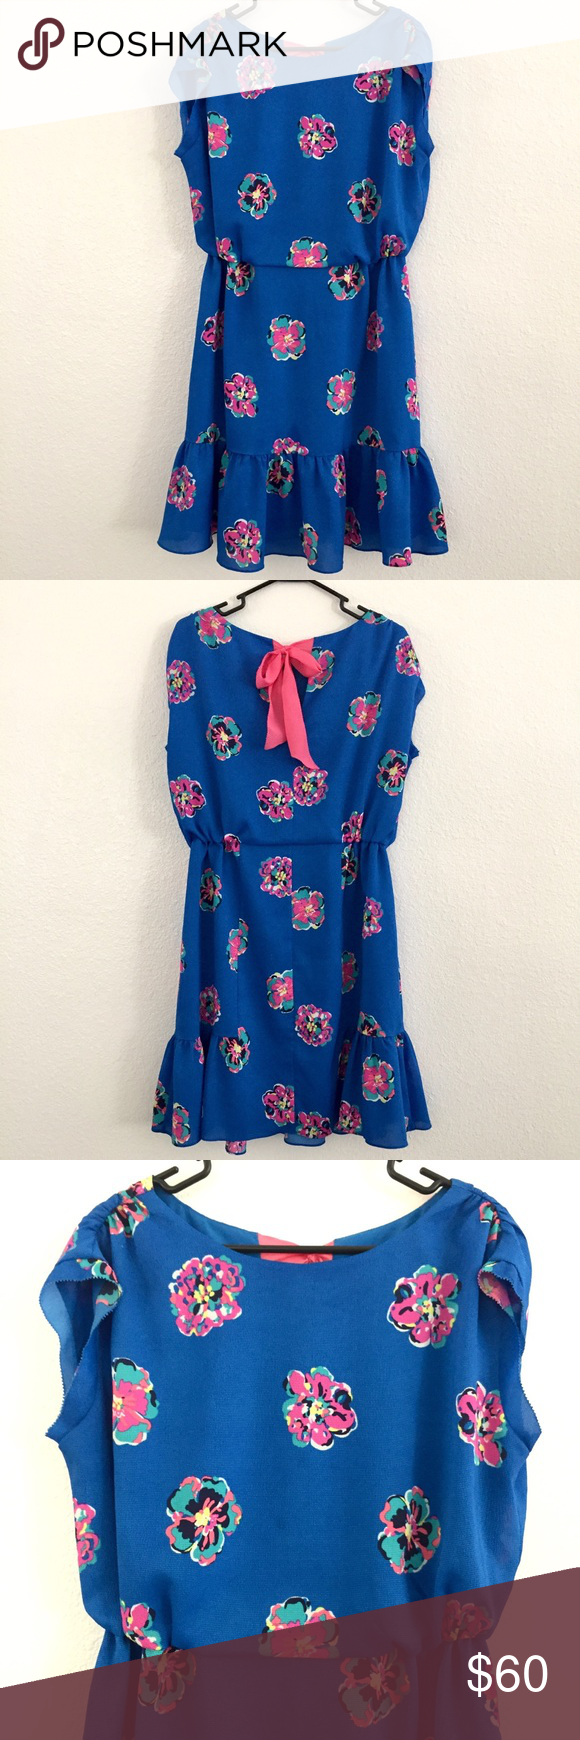 3e637a2b95 Lilly Pulitzer Auburn Floral Dress Size M No holes or stains. In great  condition. Perfect for summer! Lilly Pulitzer Dresses Mini